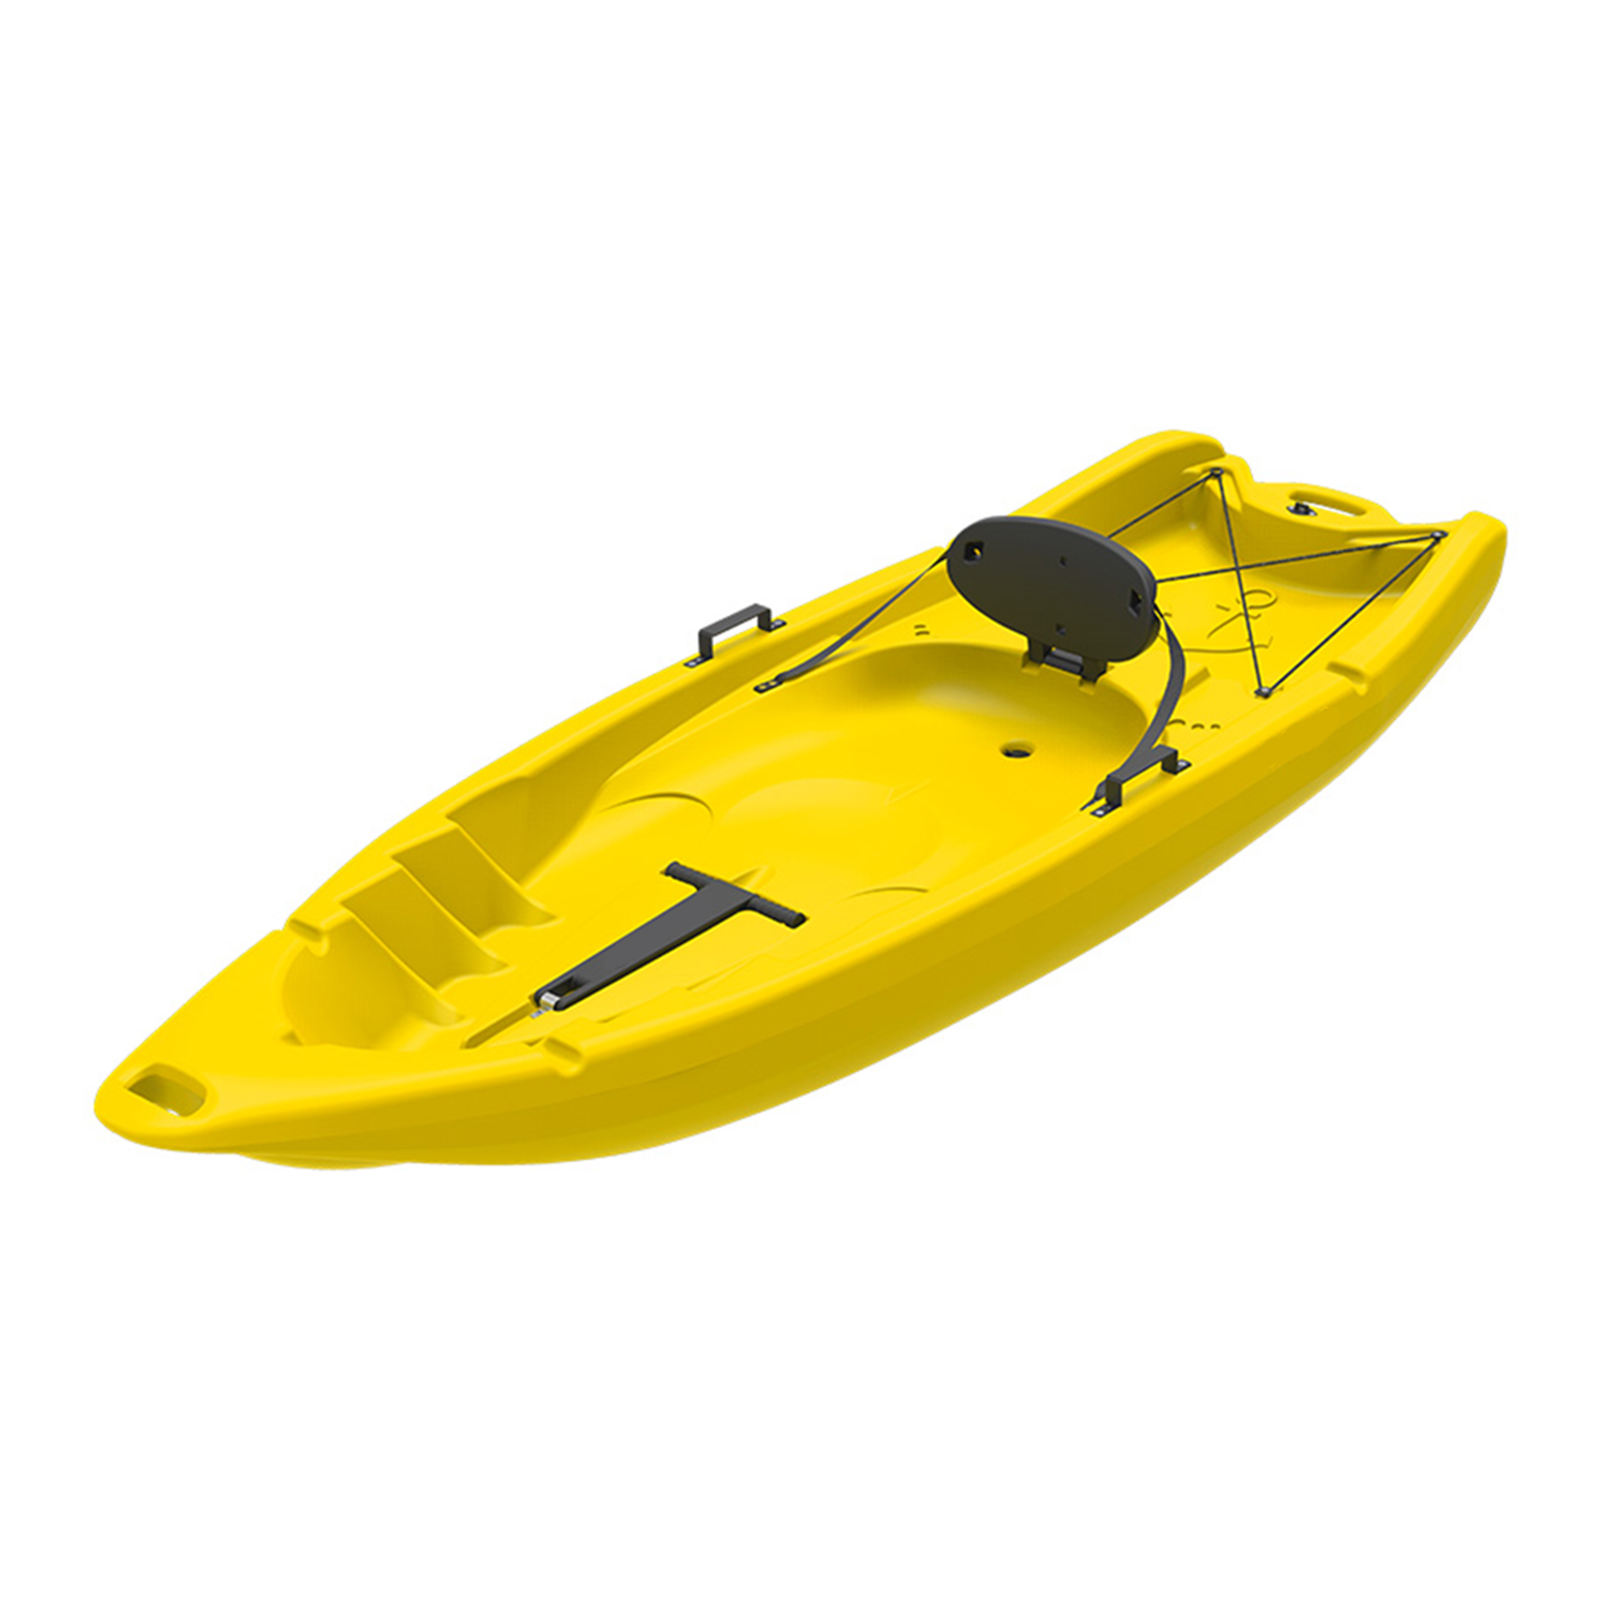 "PATTONLEX 7'9 ""* 32"" * 11.4 ""Familien <span class=keywords><strong>kinder</strong></span> und Erwachsene 2 Personen Plastik <span class=keywords><strong>kajak</strong></span> Sit On Top Kayak"